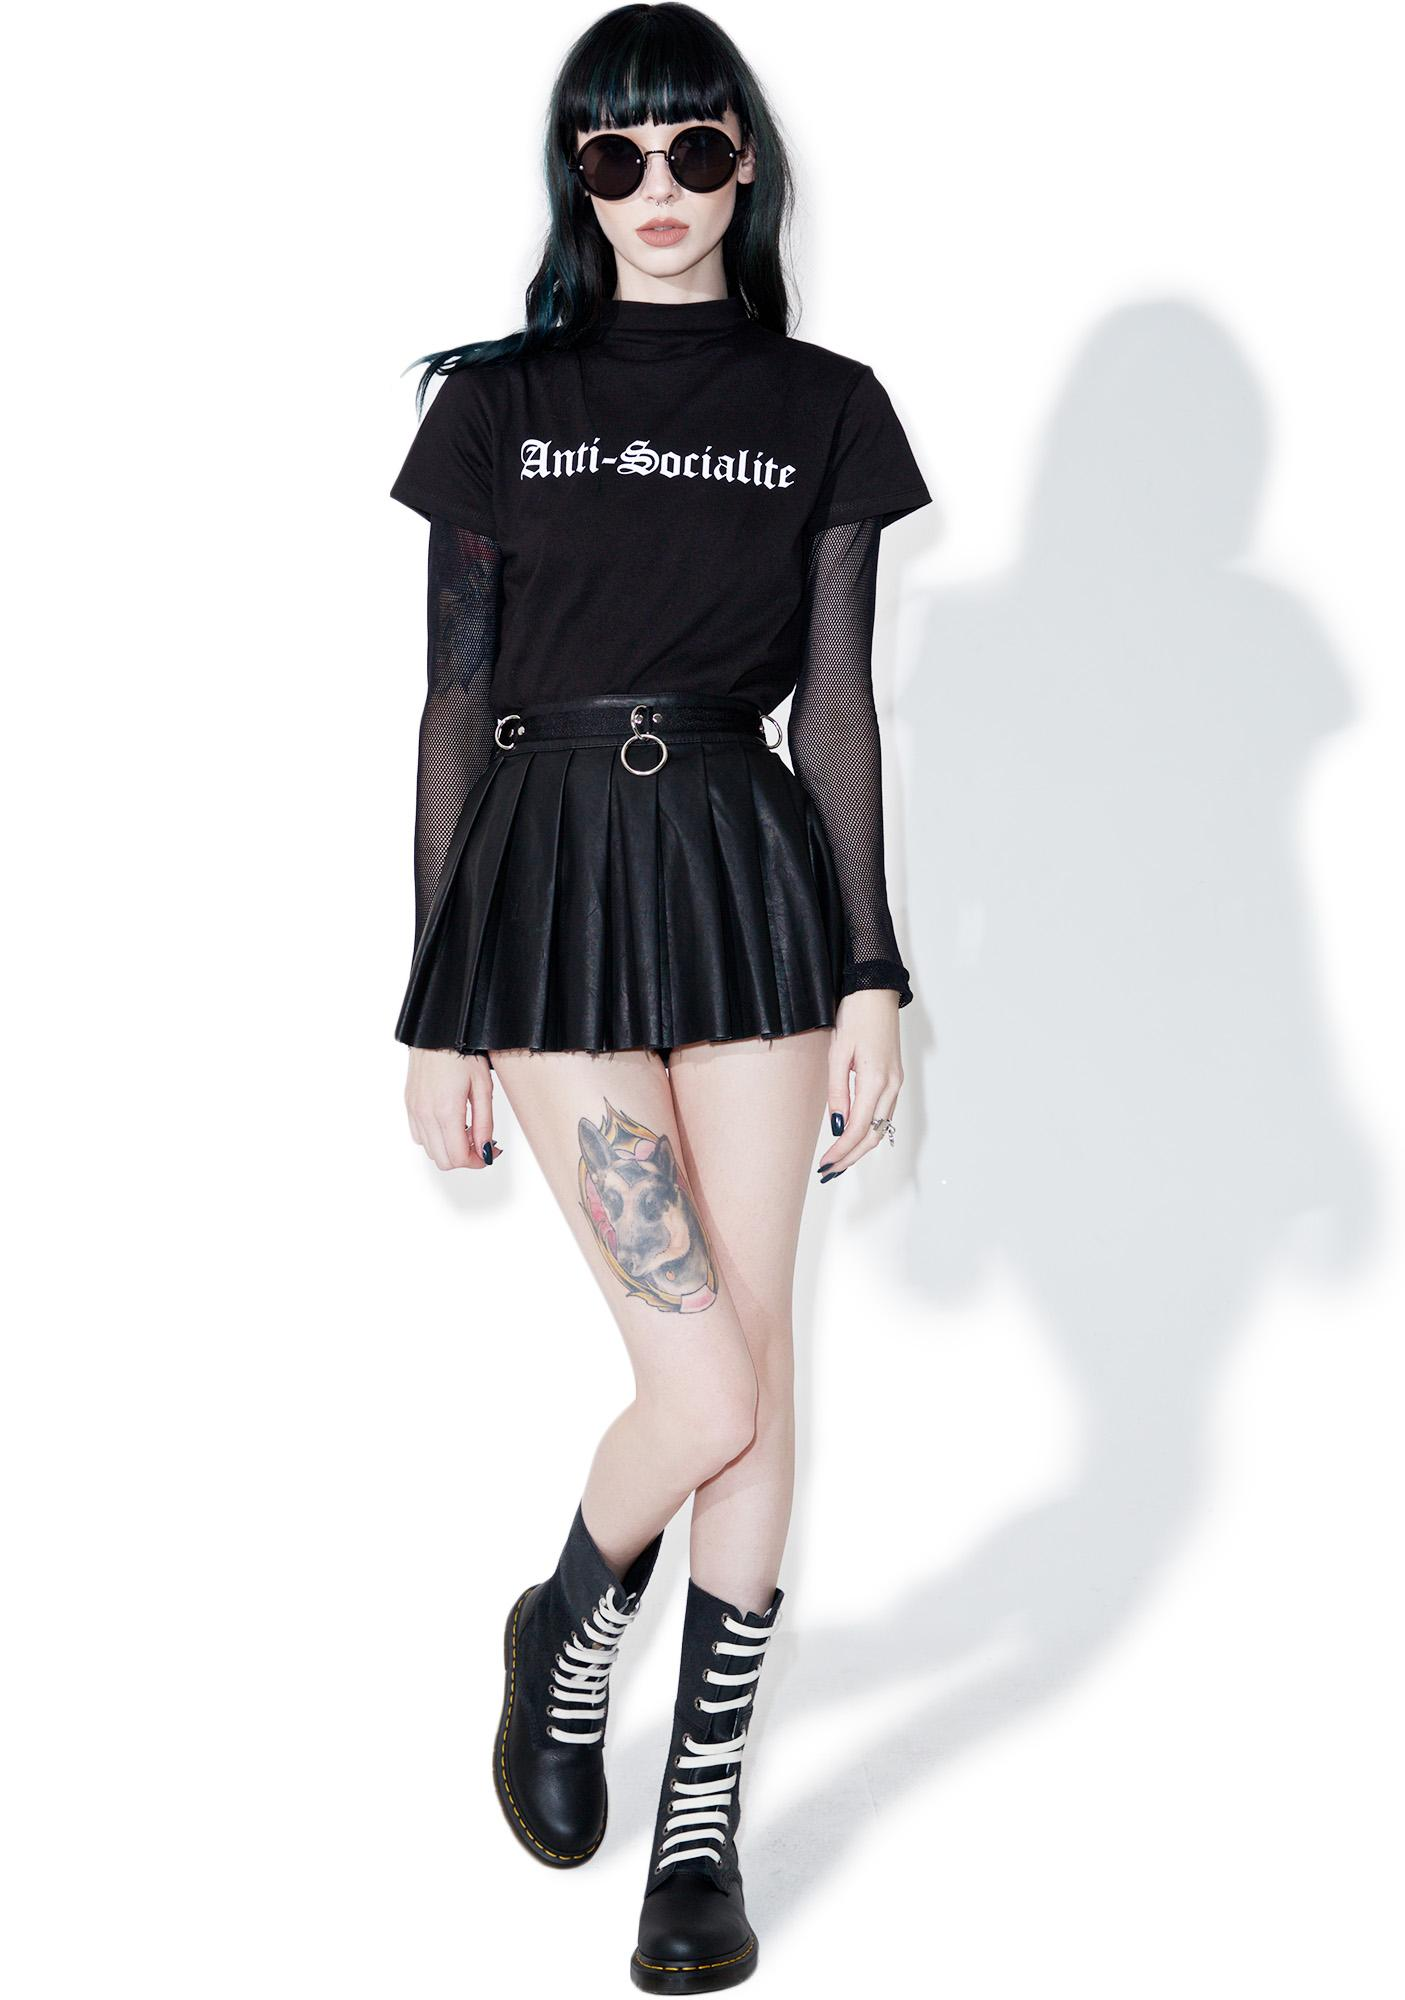 Disturbia Anti-Socialite Top